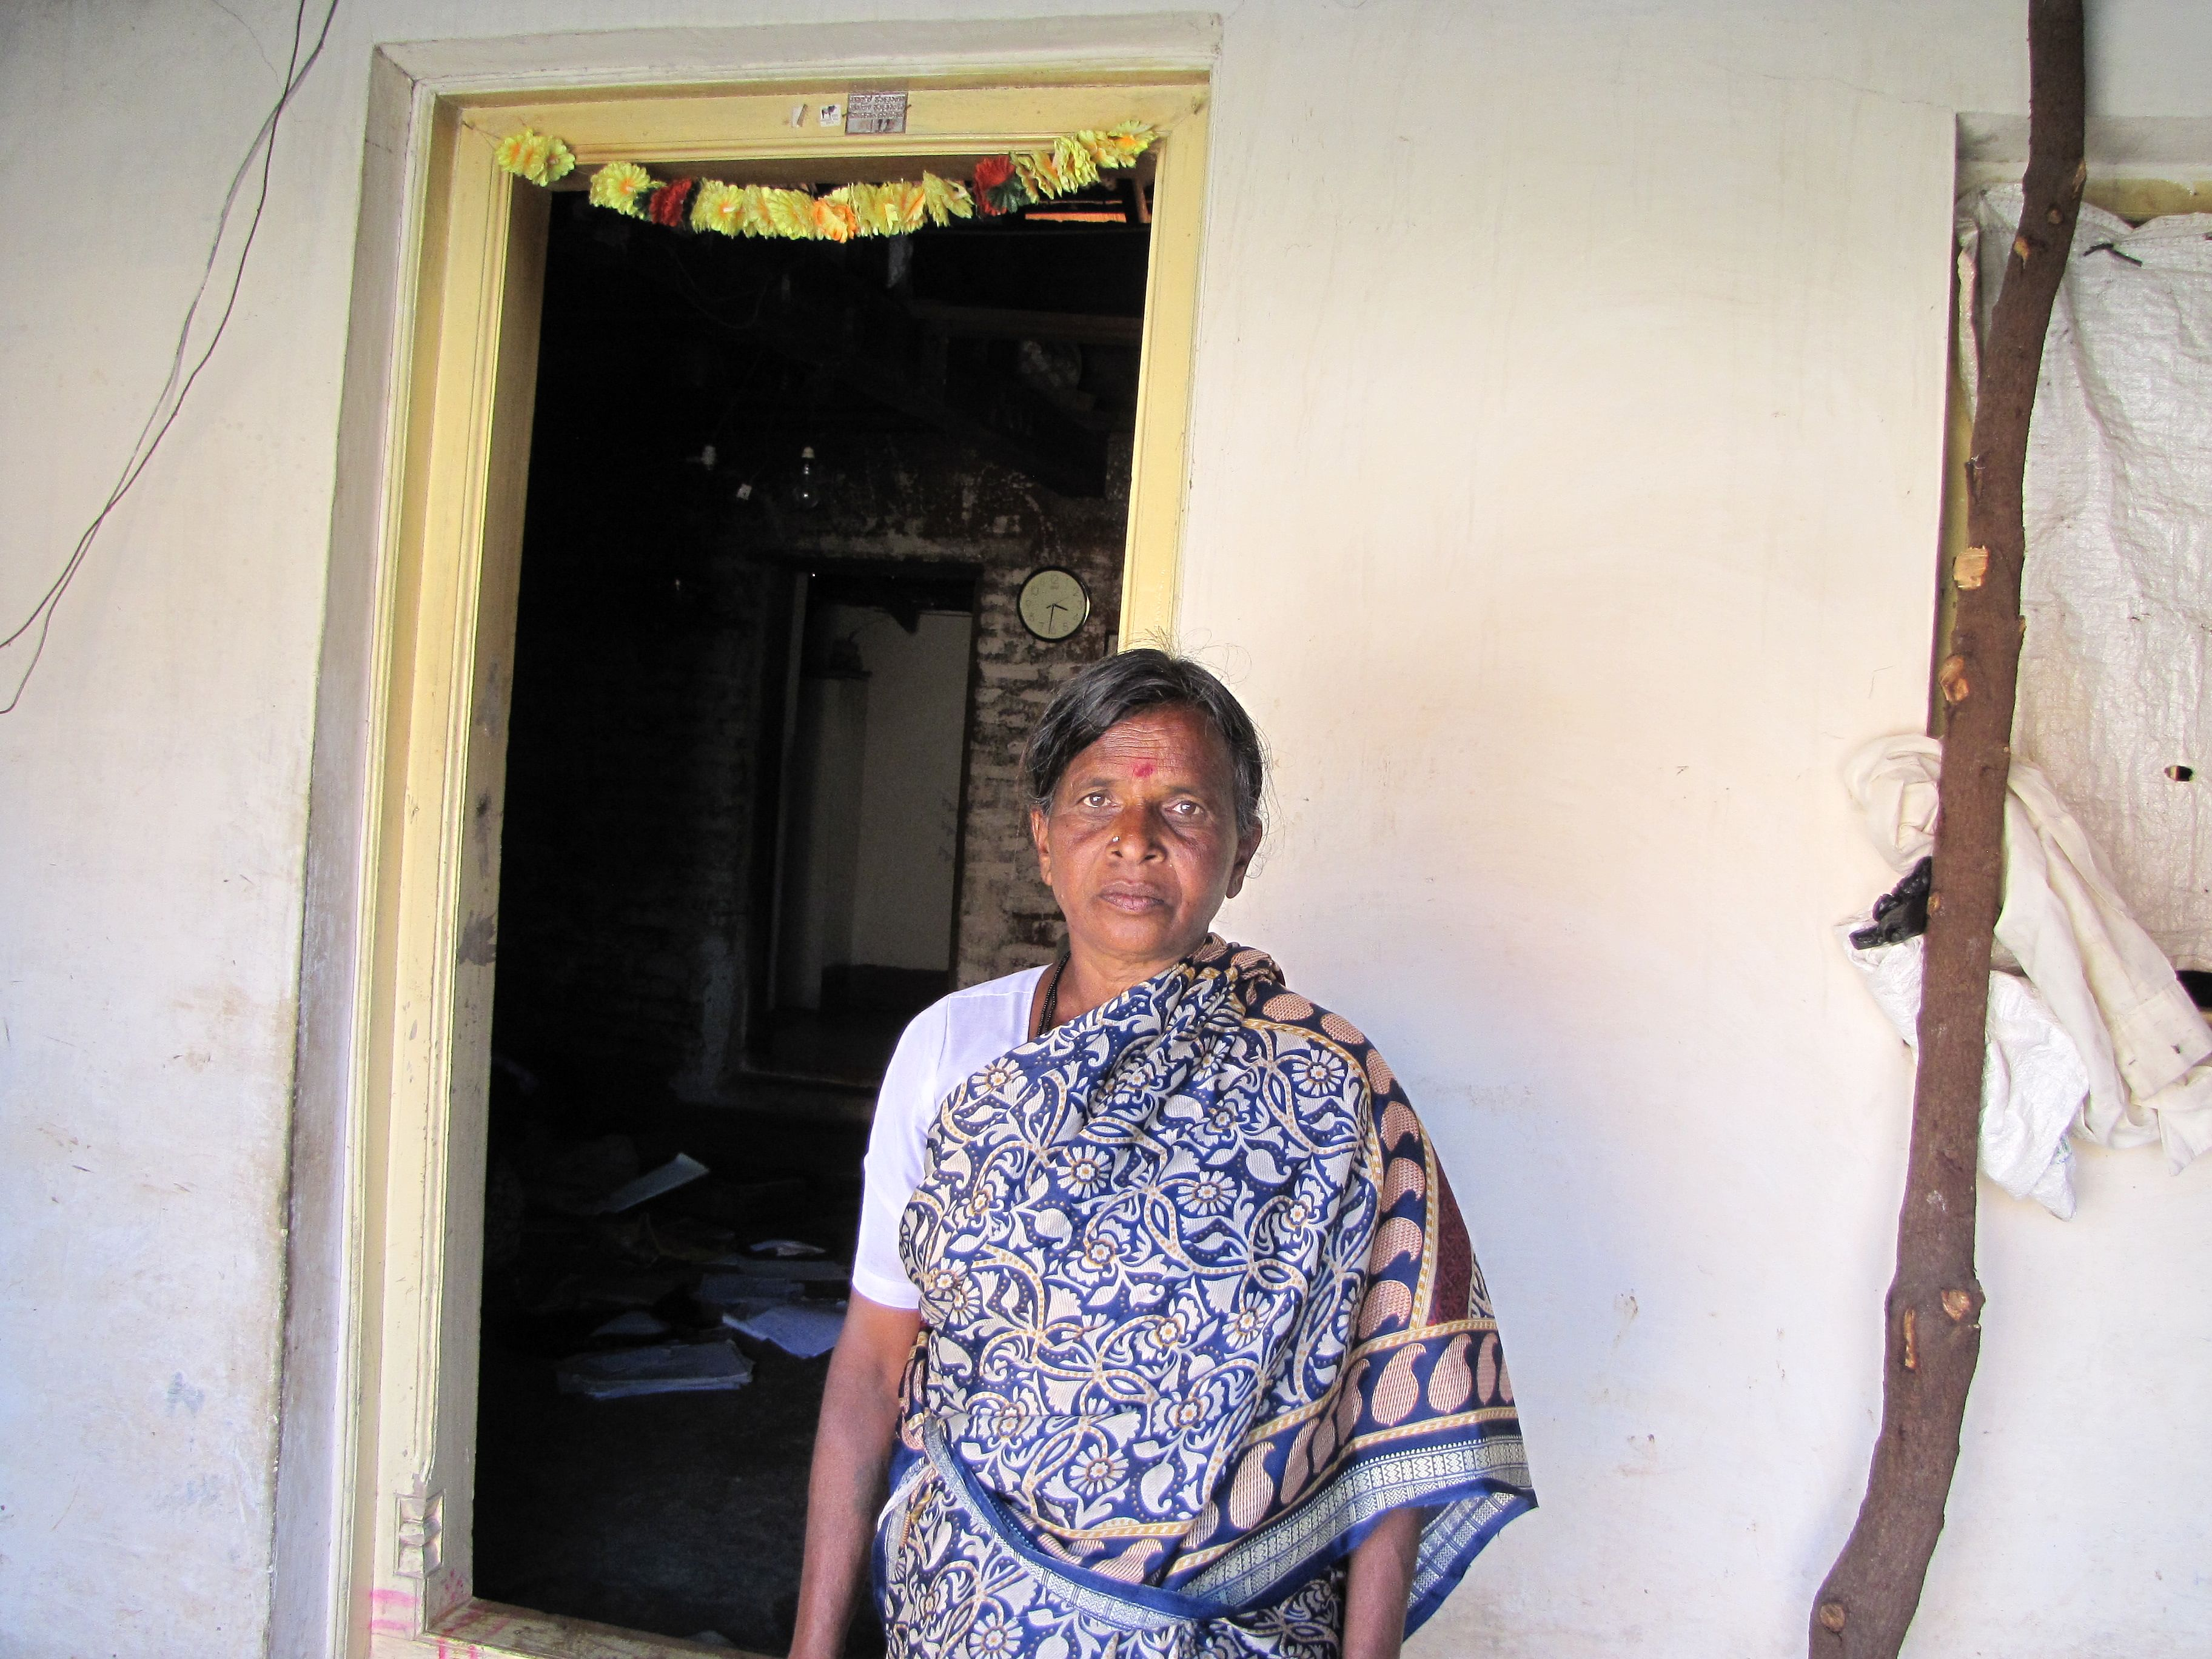 Ningamma from Tottavaadi village in Mysore is a proud land owner. She managed to get allotment under the Bhoo Odethana Yojane.